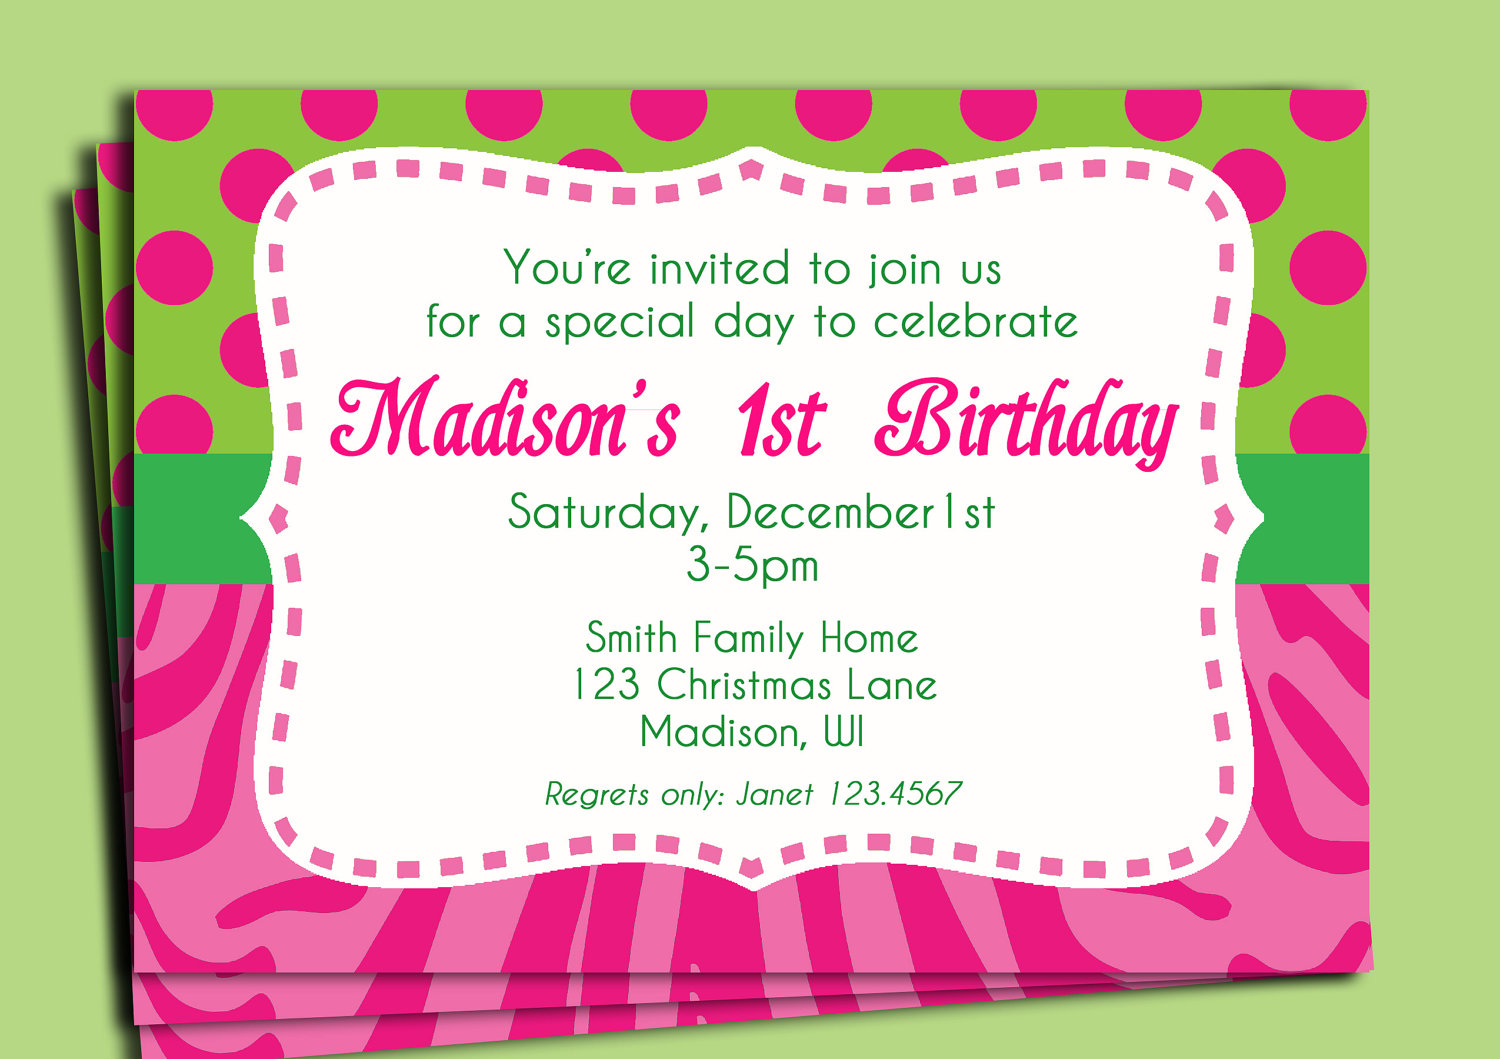 birthday party invitation sms ; How-To-Make-Birthday-Party-Invitations-Superb-How-To-Rsvp-To-A-Birthday-Party-Invitation